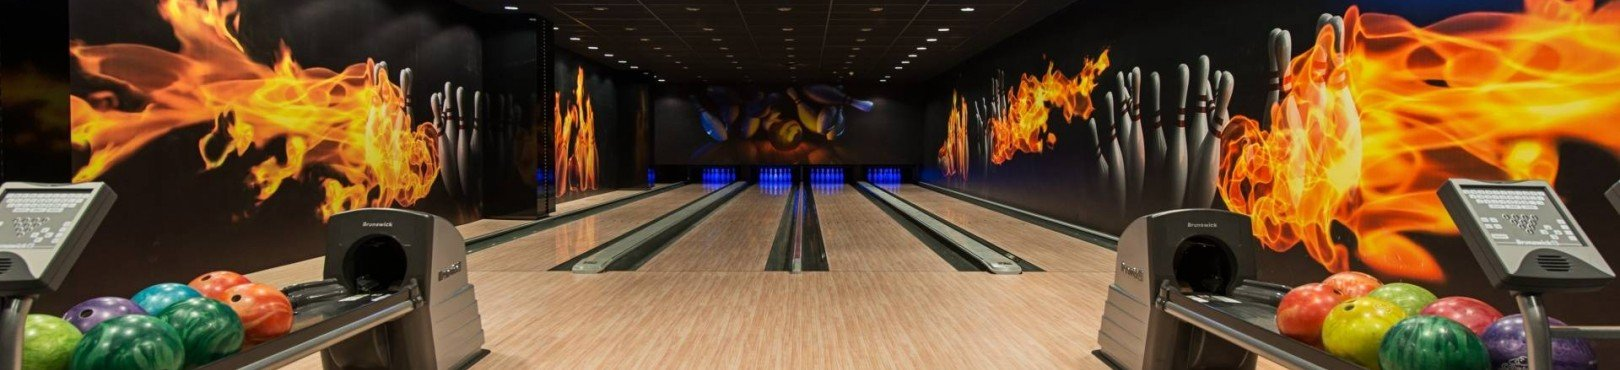 <h4><a href='/en/attractions/bowling-alley' >BOWLING ALLEY</a></h4><div class='item-intro'>In the entertainment zone of Club 77, on floor -2, one of the more interesting highlights of our Hotel is placed. We offer you four professional, fully automated, computer-controlled bowling aisles where we hold tournaments, as well as business and special...</div><div class='item-link'><a class='btn-portal' href='/en/attractions/bowling-alley' >Read more</a></div>